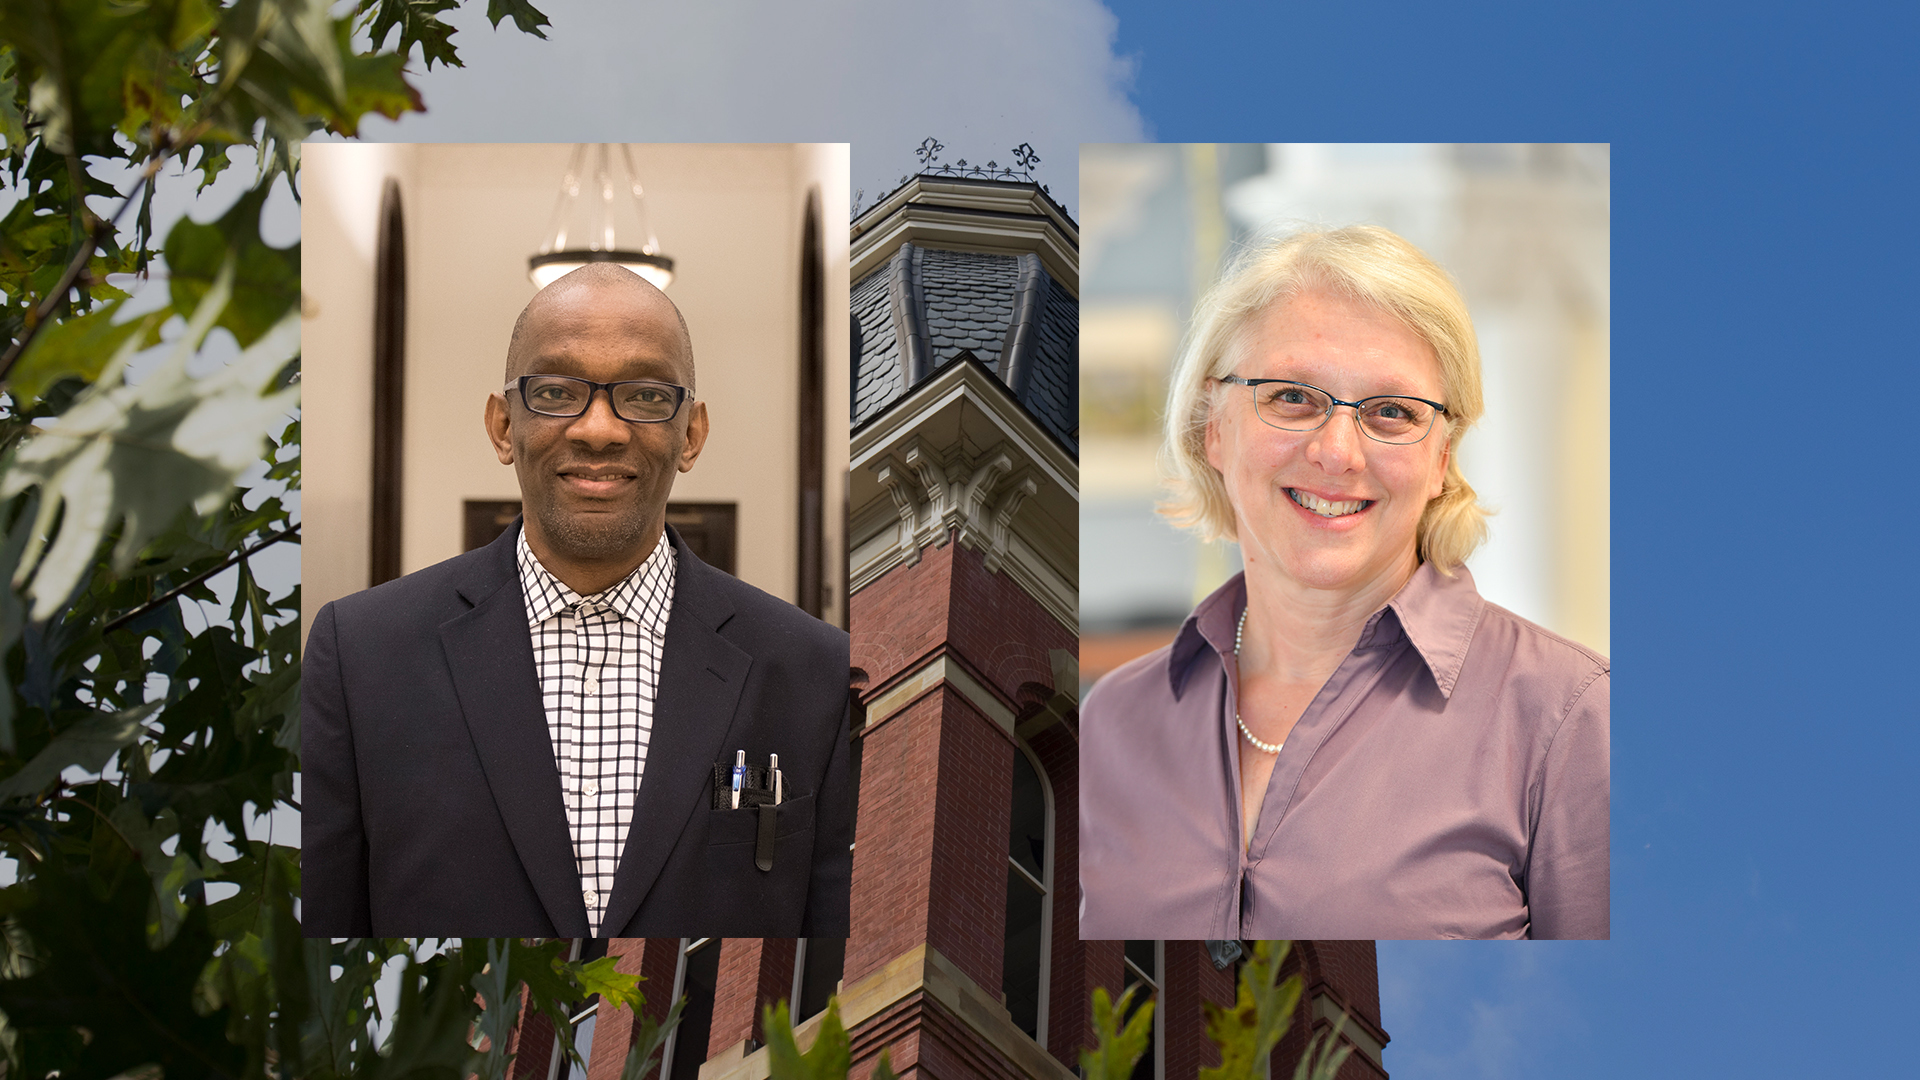 An unprecedented two scholars from West Virginia University have received the top fellowship from the National Endowment for the Humanities.